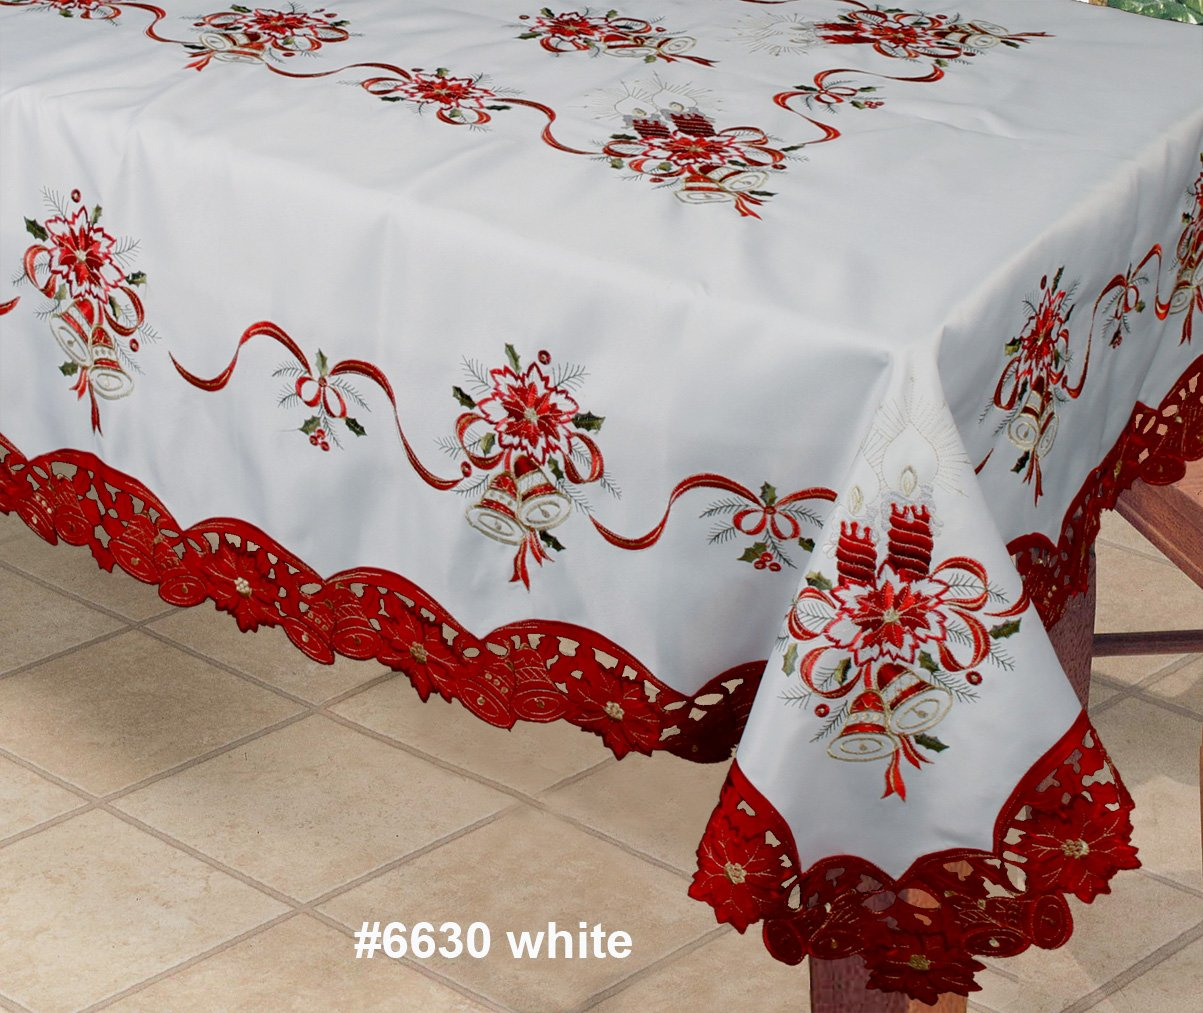 this beautiful embroidered christmas poinsettiacandlesbells tablecloth has a white background a red border it has embroidered red poinsettia